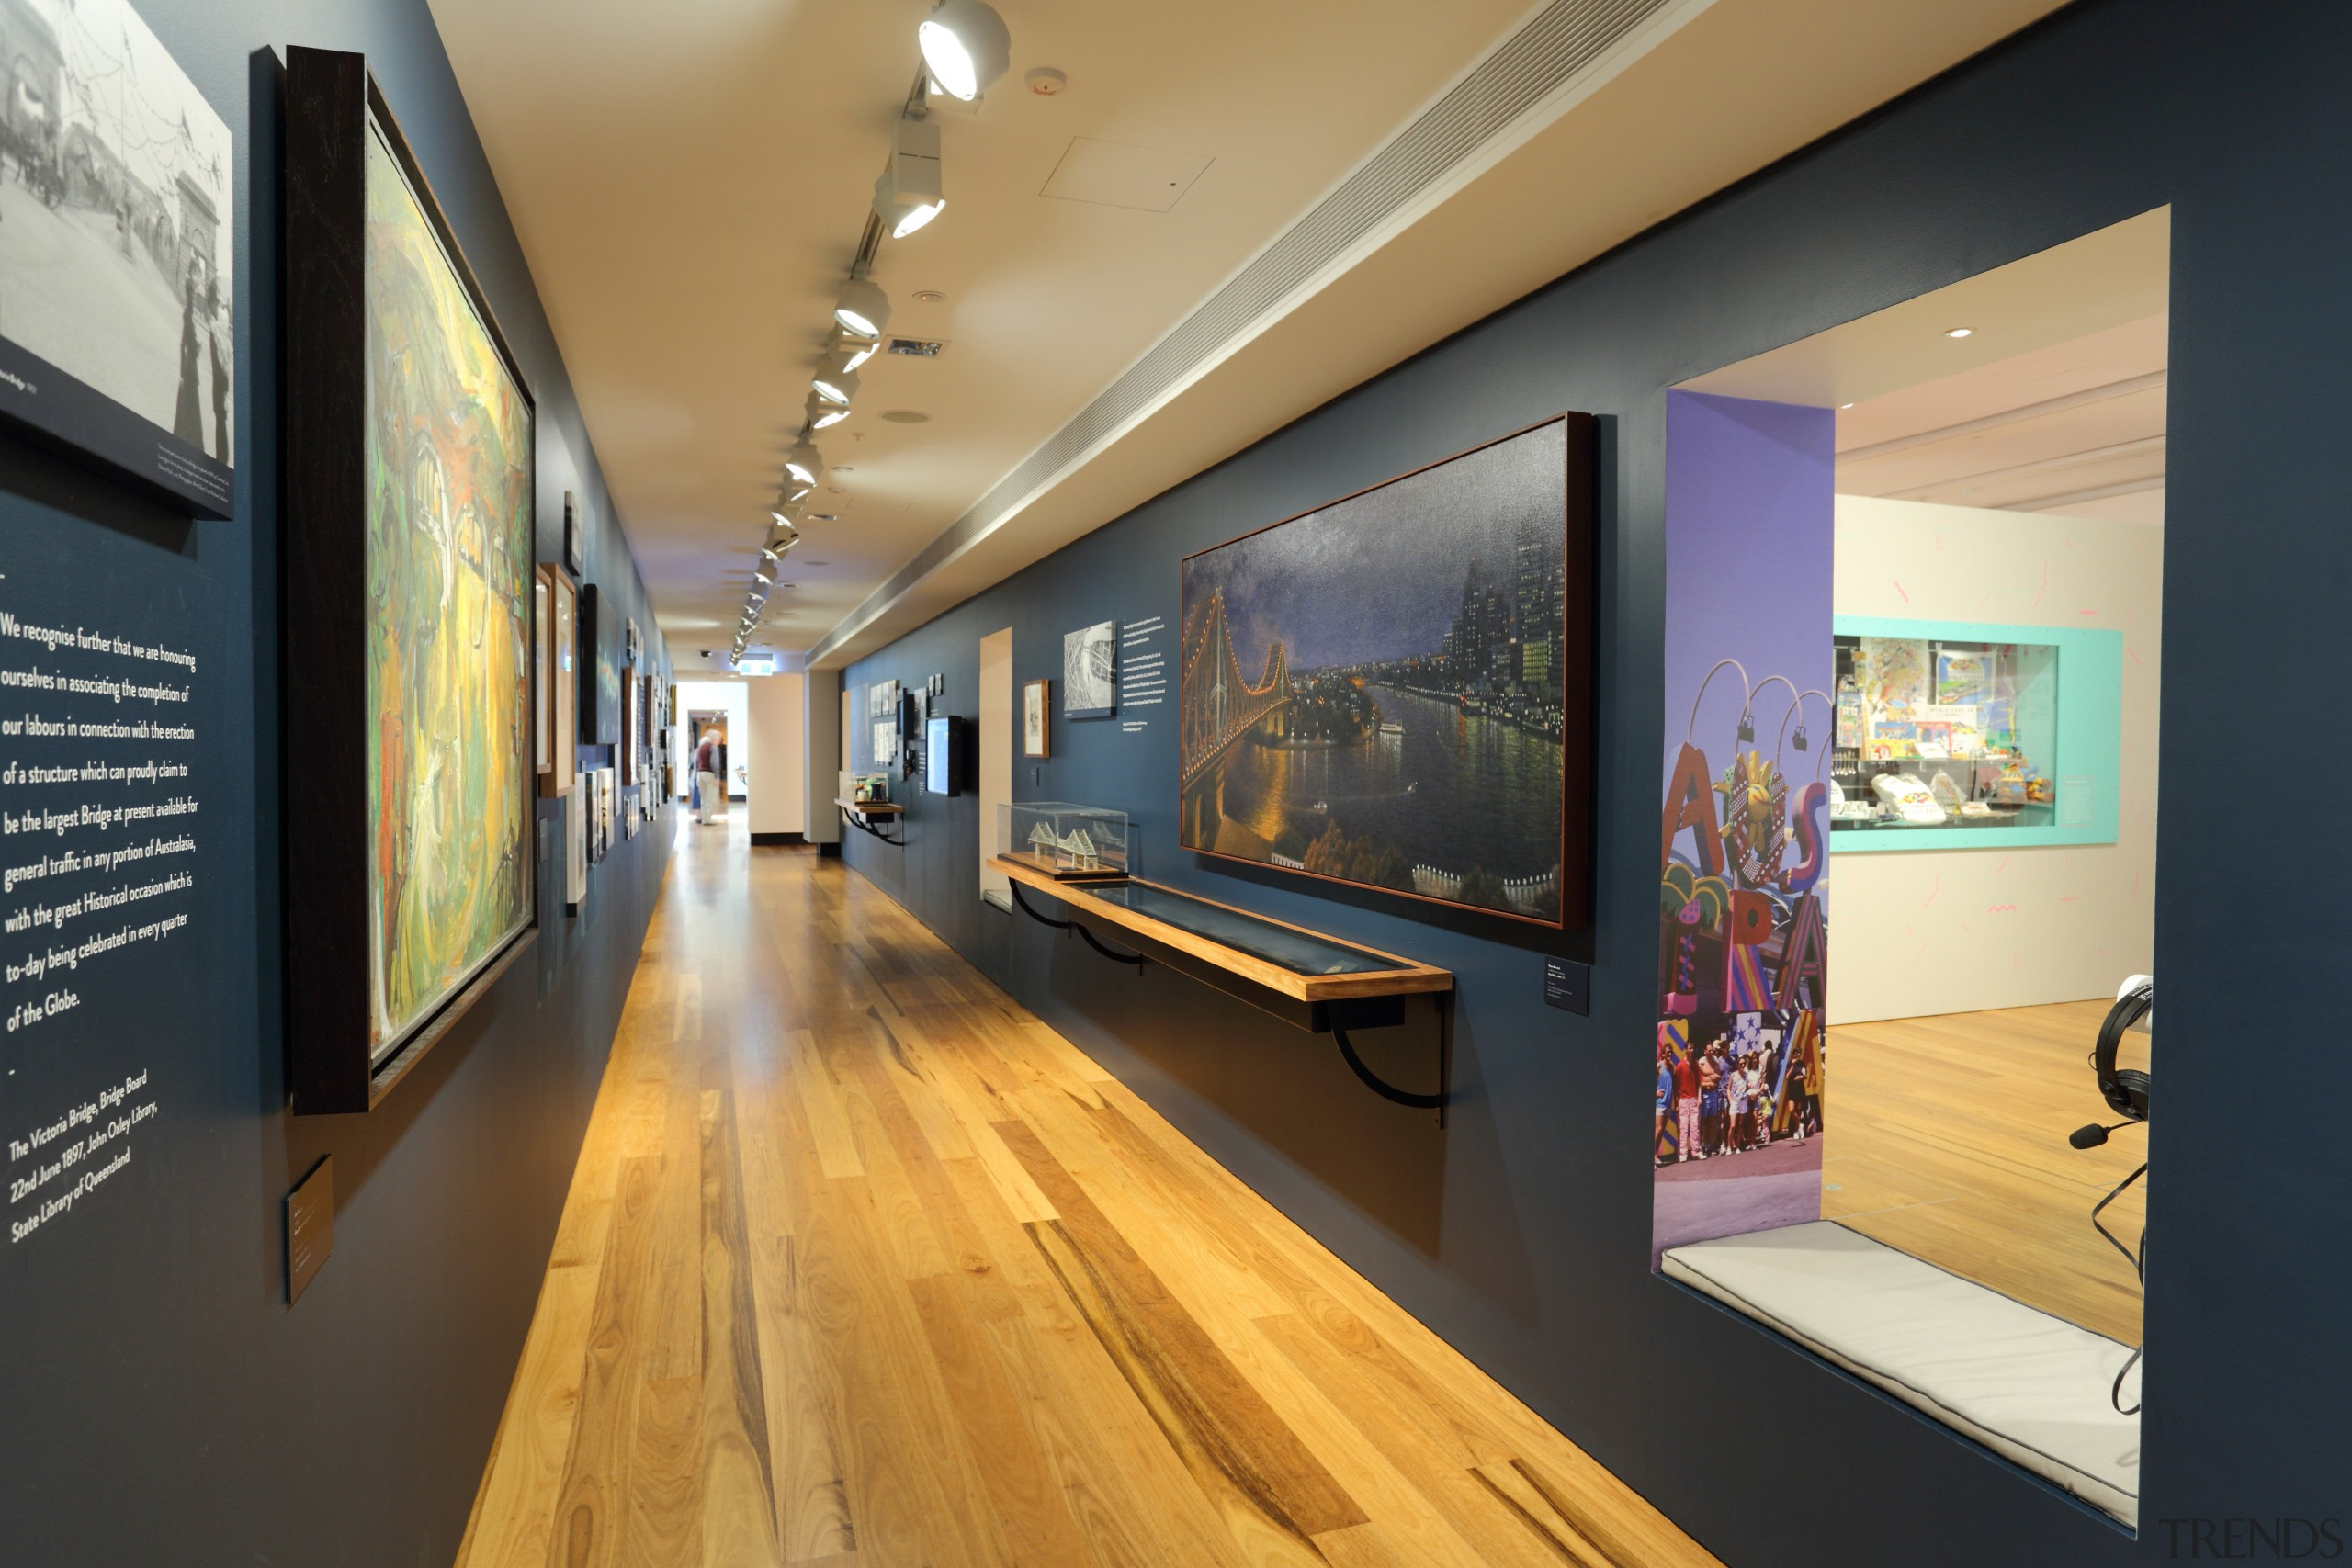 One of the galleries in the new Museum art gallery, exhibition, interior design, museum, tourist attraction, black, orange